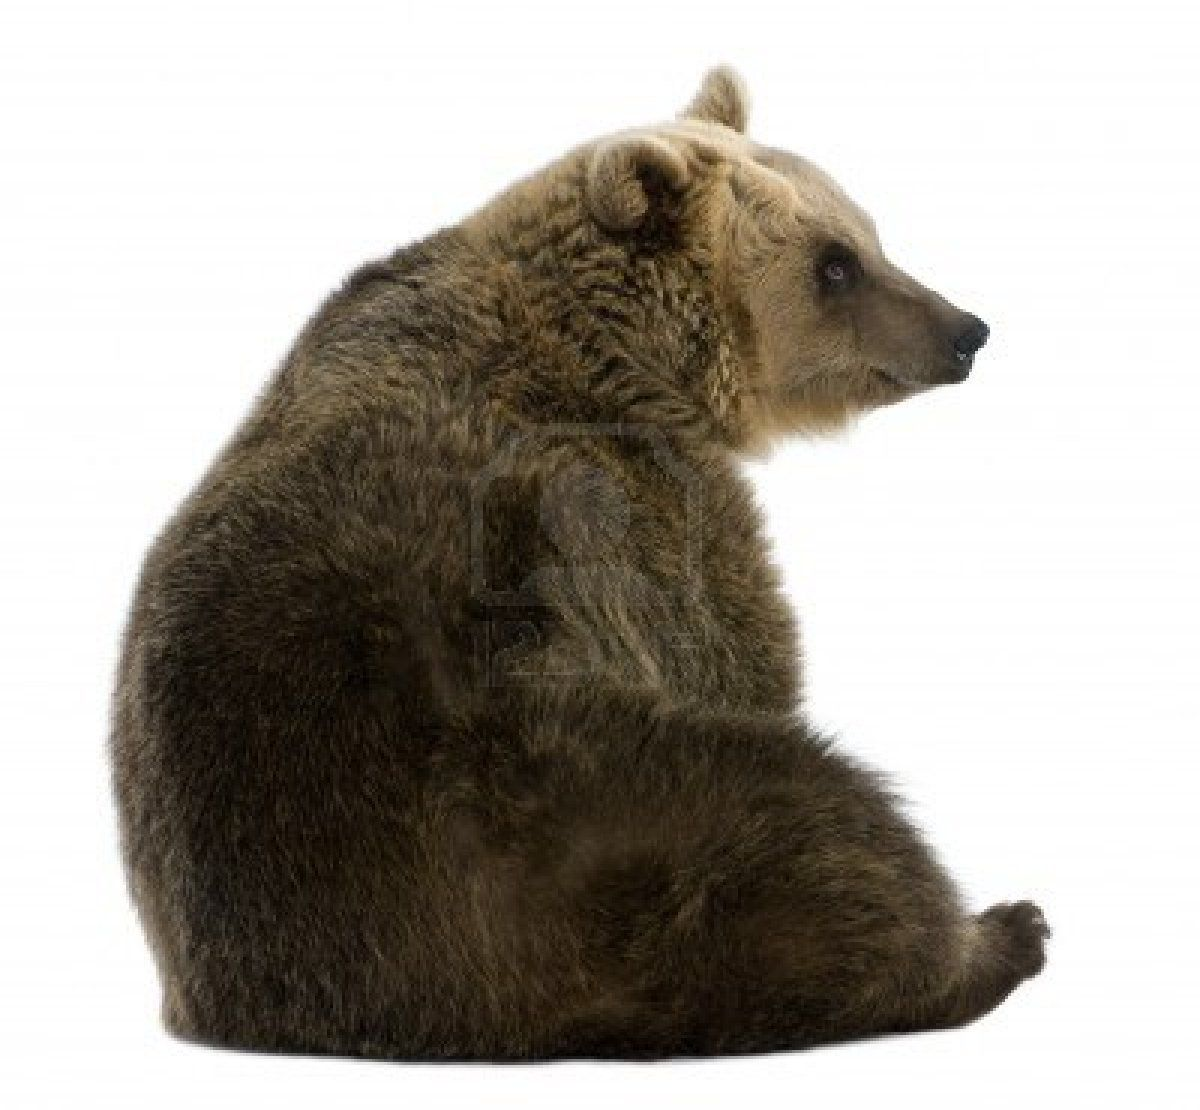 Female brown bear 8 years old sitting against white